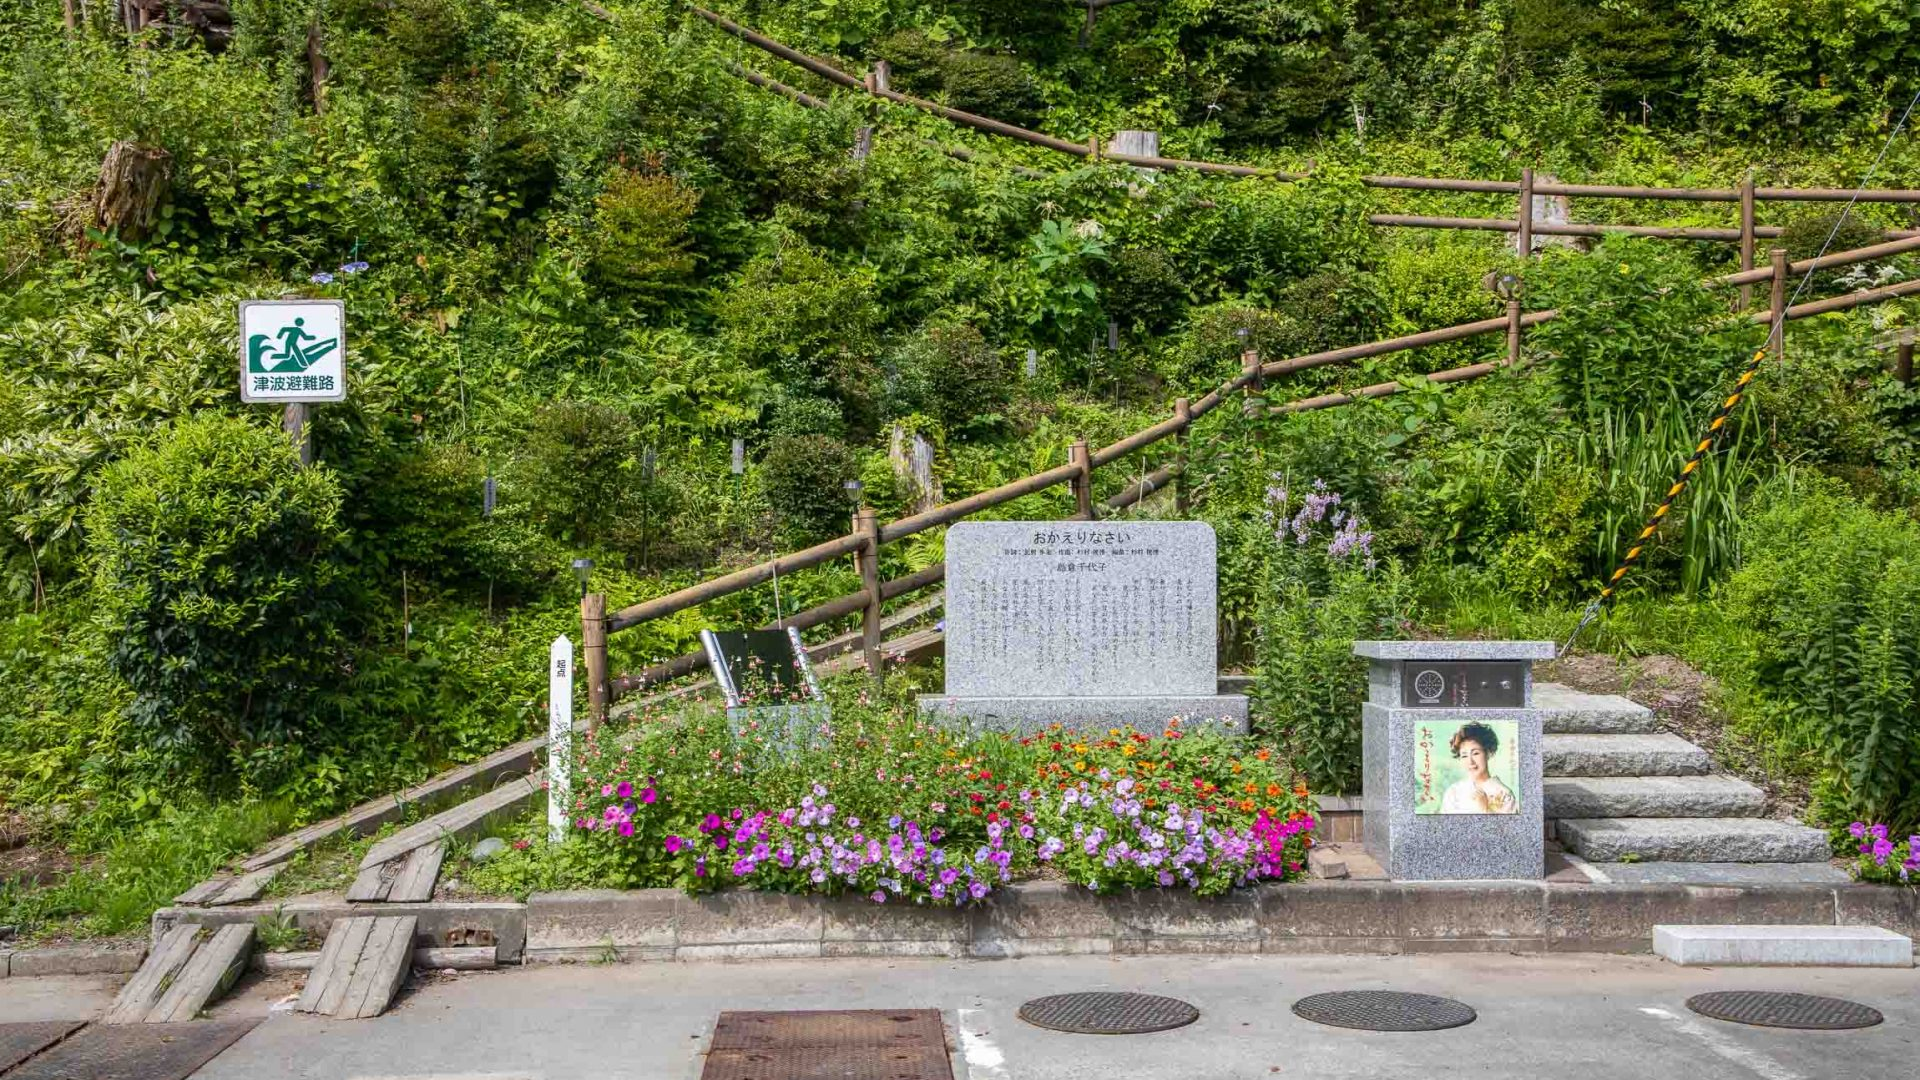 Rugby A steep path used by people to escape the tsunami climbs up the wooded mountain, passing a Shinto shrine to a Japanese god of water.